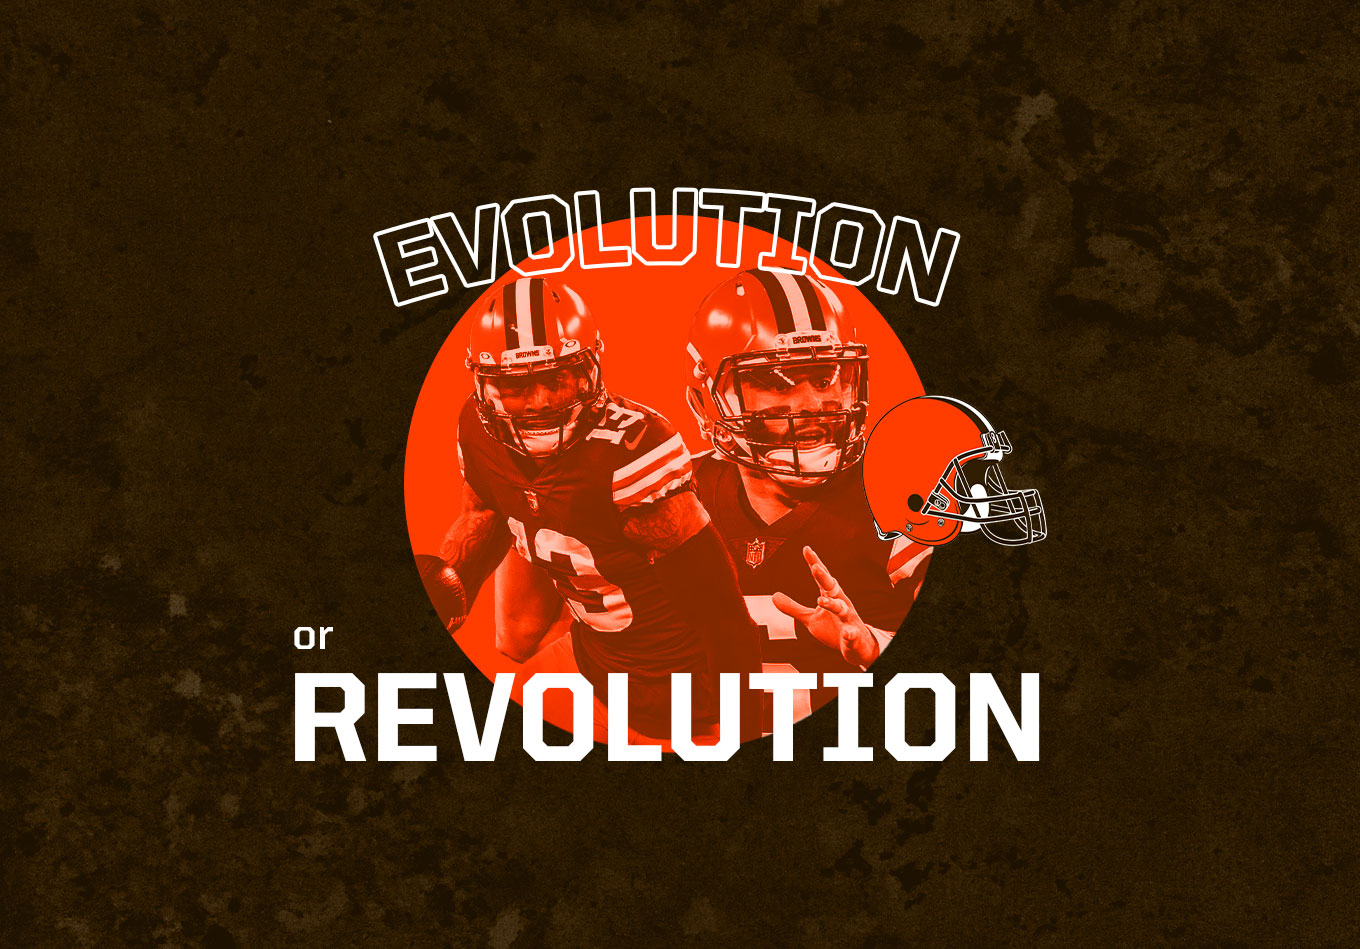 Have the Browns Moved Closer to Super Bowl Contention After a Breakthrough 2020?